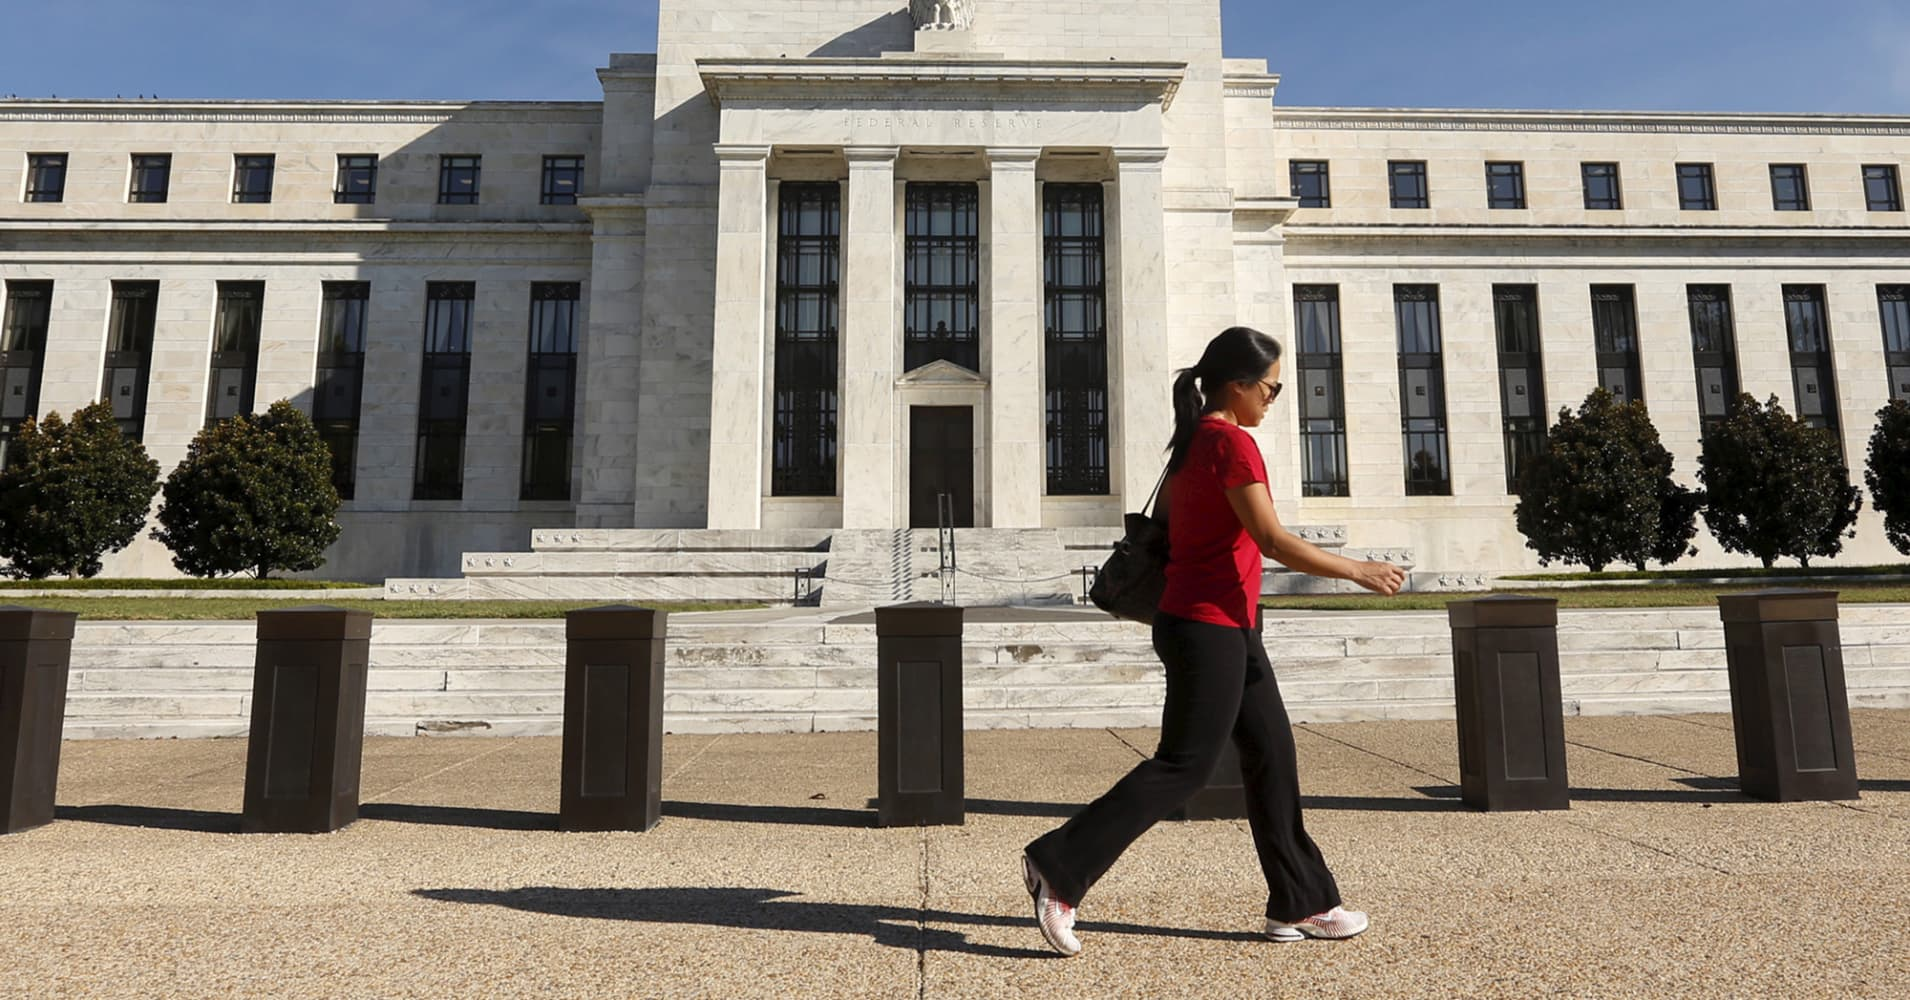 The Fed will likely turn more aggressive in raising rates, says Deutsche Bank